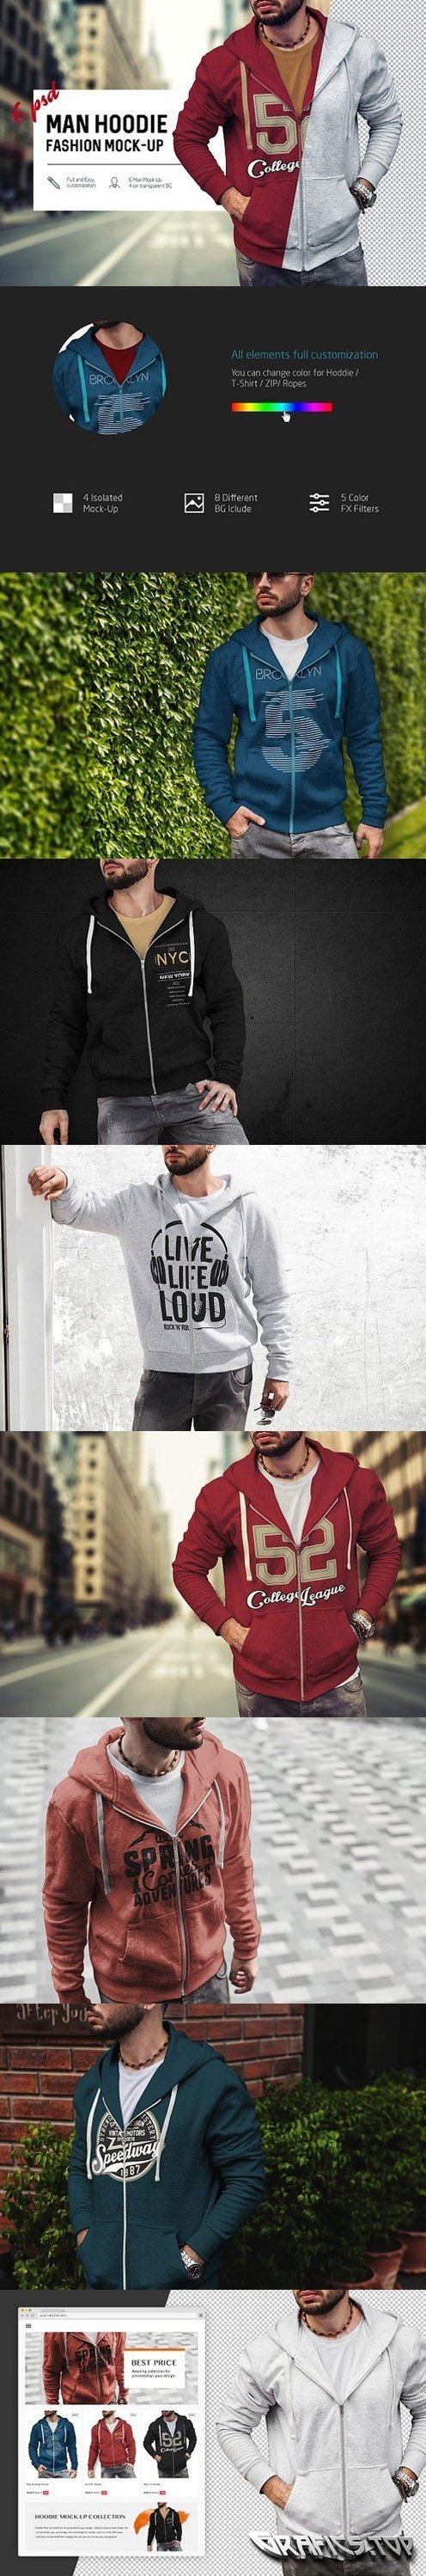 Man Hoodie Fashion Mock-Up 1674596